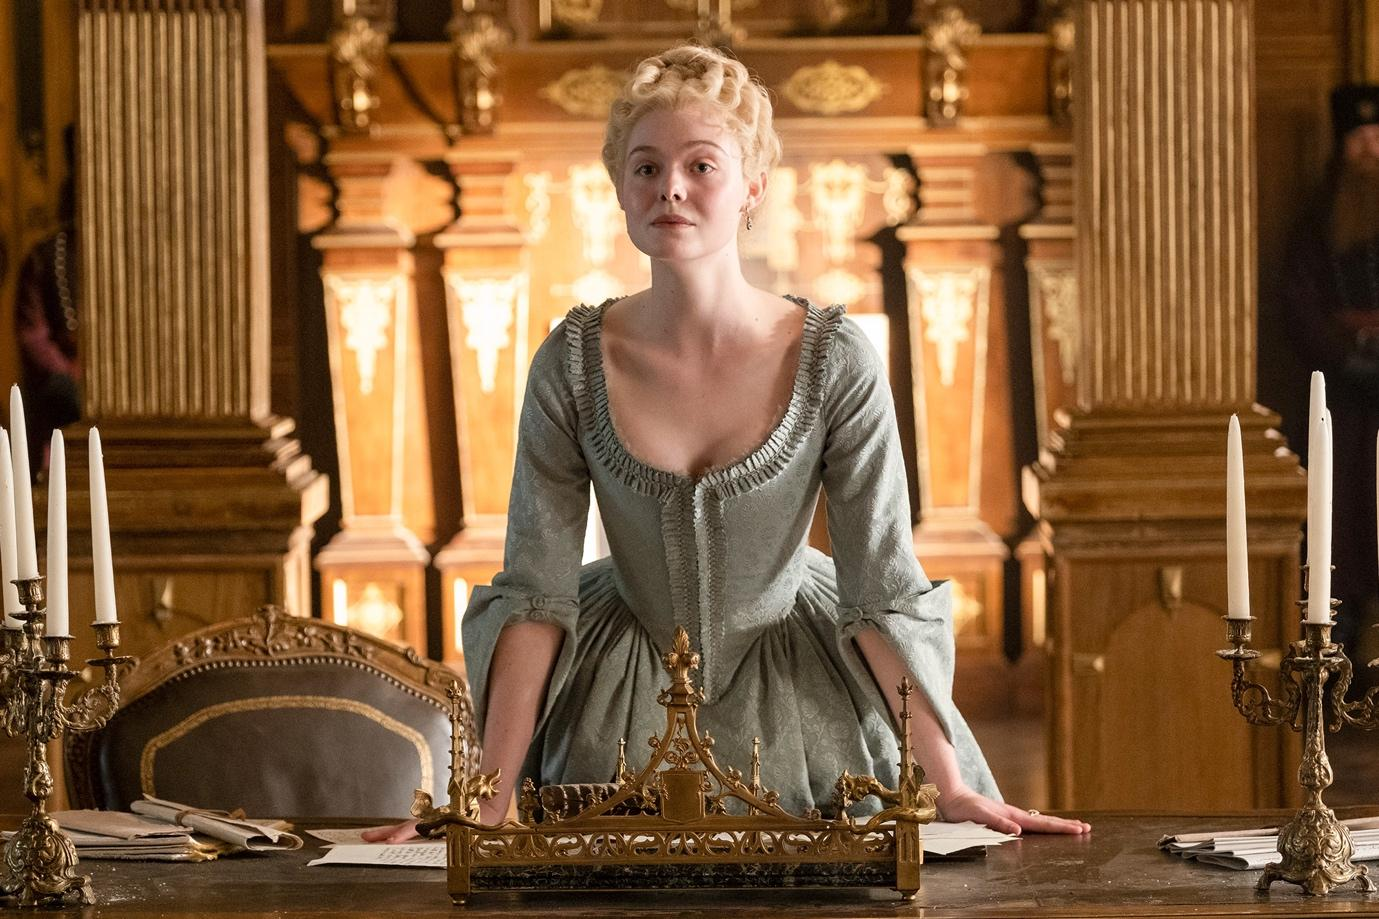 The Great (2020). Catherine the Great (Elle Fanning) is a young white woman in her 20s, with pale blonde hair done up in neat curls at the back of her head. She wears a pale grey-blue dress of the 18th century with elaborate sleeves, a deep neck-line, and large skirt. She is standing behind a large wooden table strewn with papers and framed by two large candelabras. Catherine is leant forwards with her palms planted on the table, assertive.